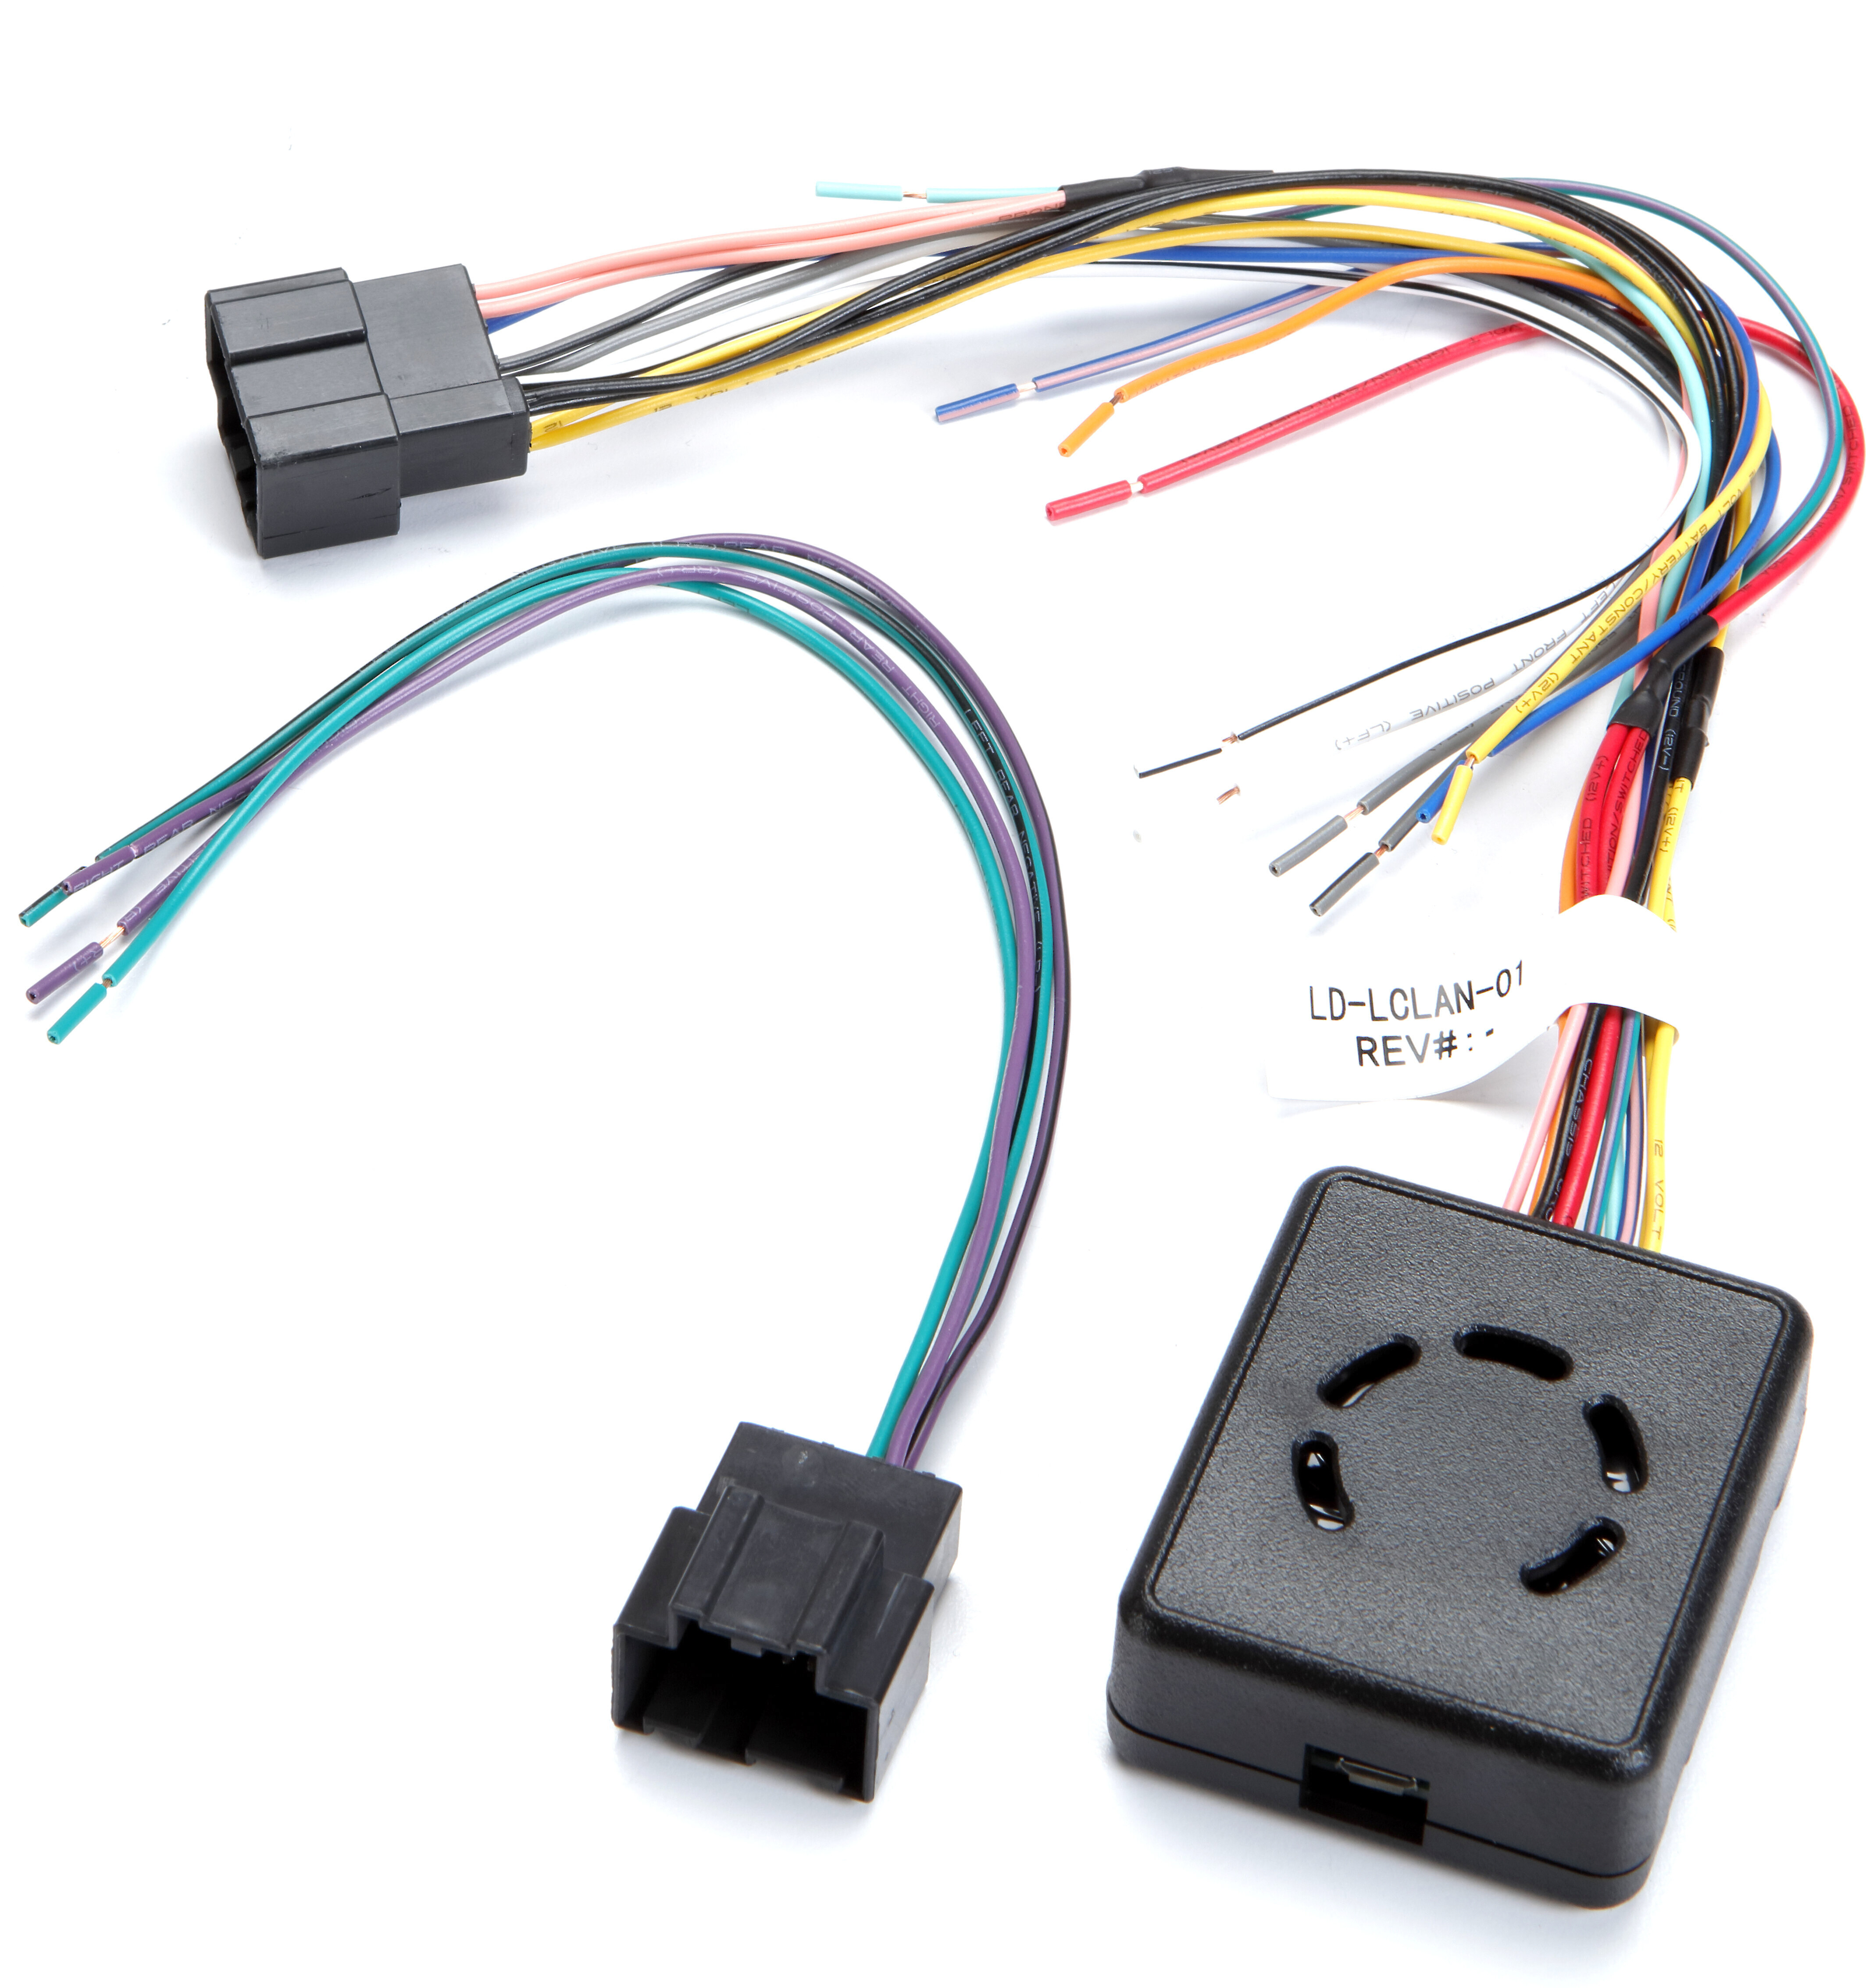 metra lc-gmrc-lan-01 wiring interface connect a new car stereo and retain  factory door chimes and audible safety warnings in select 2006-12 gm  vehicles at